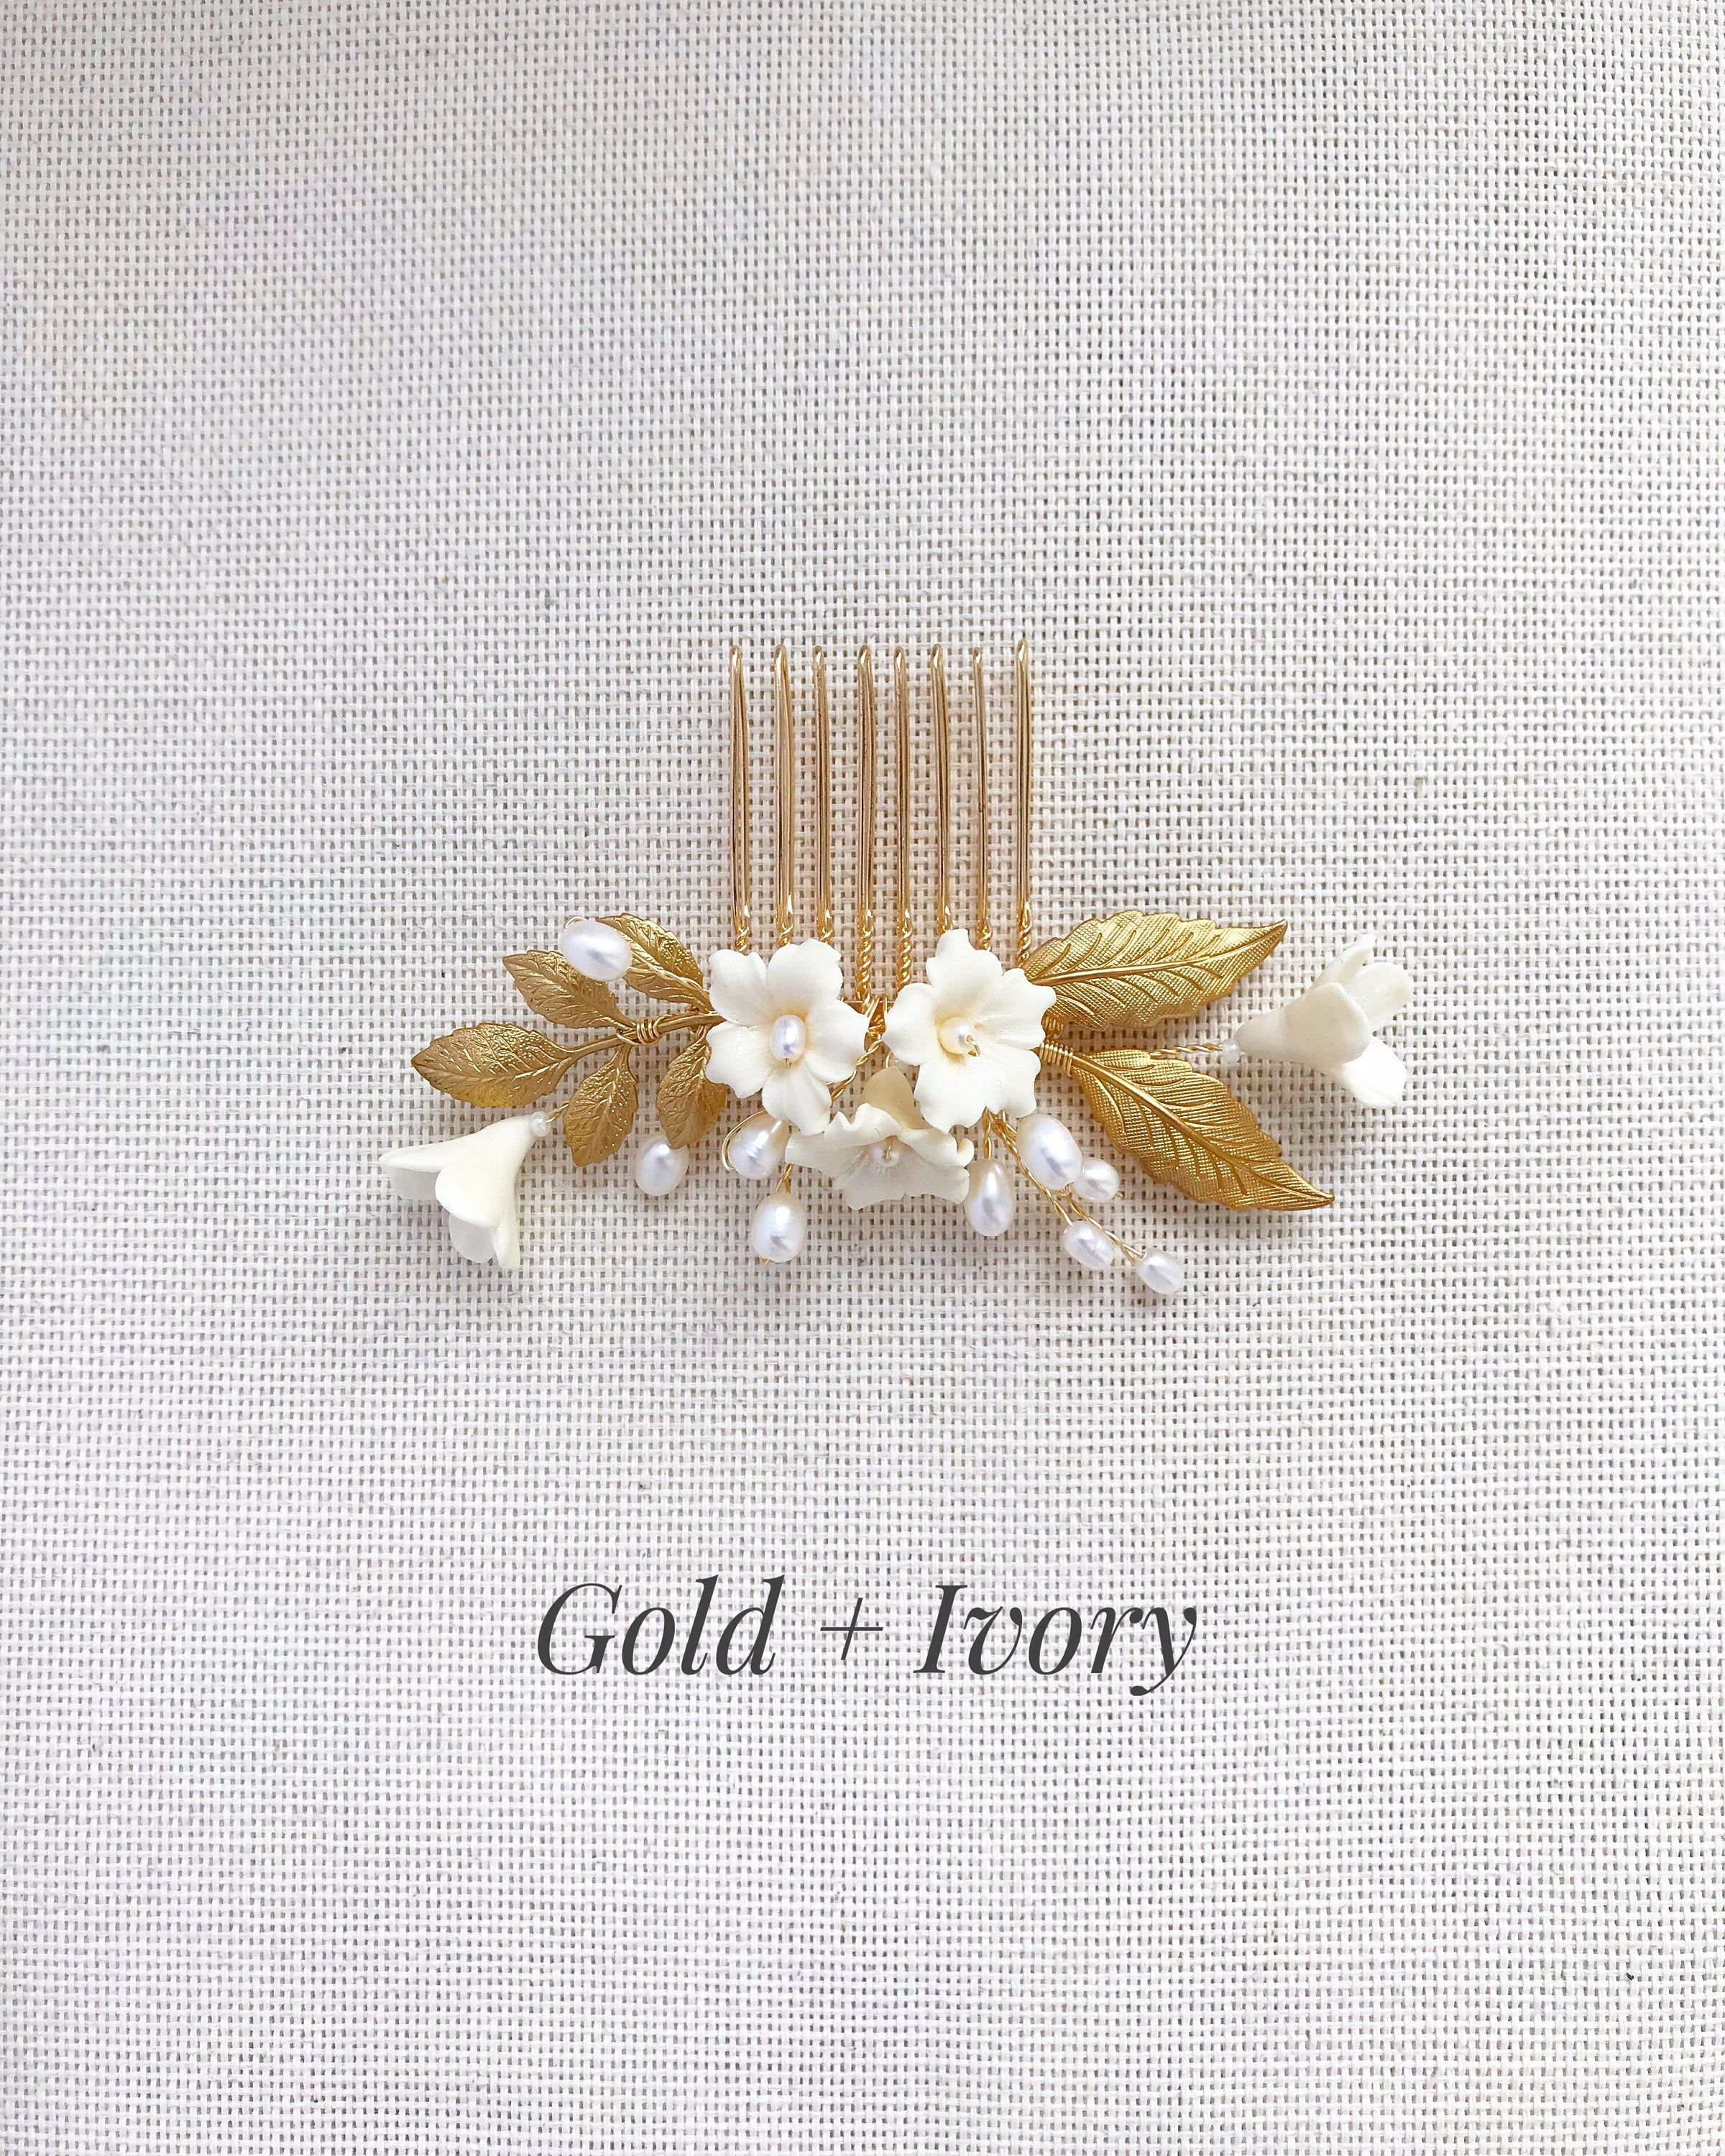 Small Bridal Hair Comb Gold & Pearl, Wedding Head Piece for Bride, Bridal Hair Accessories, Flowers Headpiece, Simple Bridal Hair Piece #bridalhairflowers